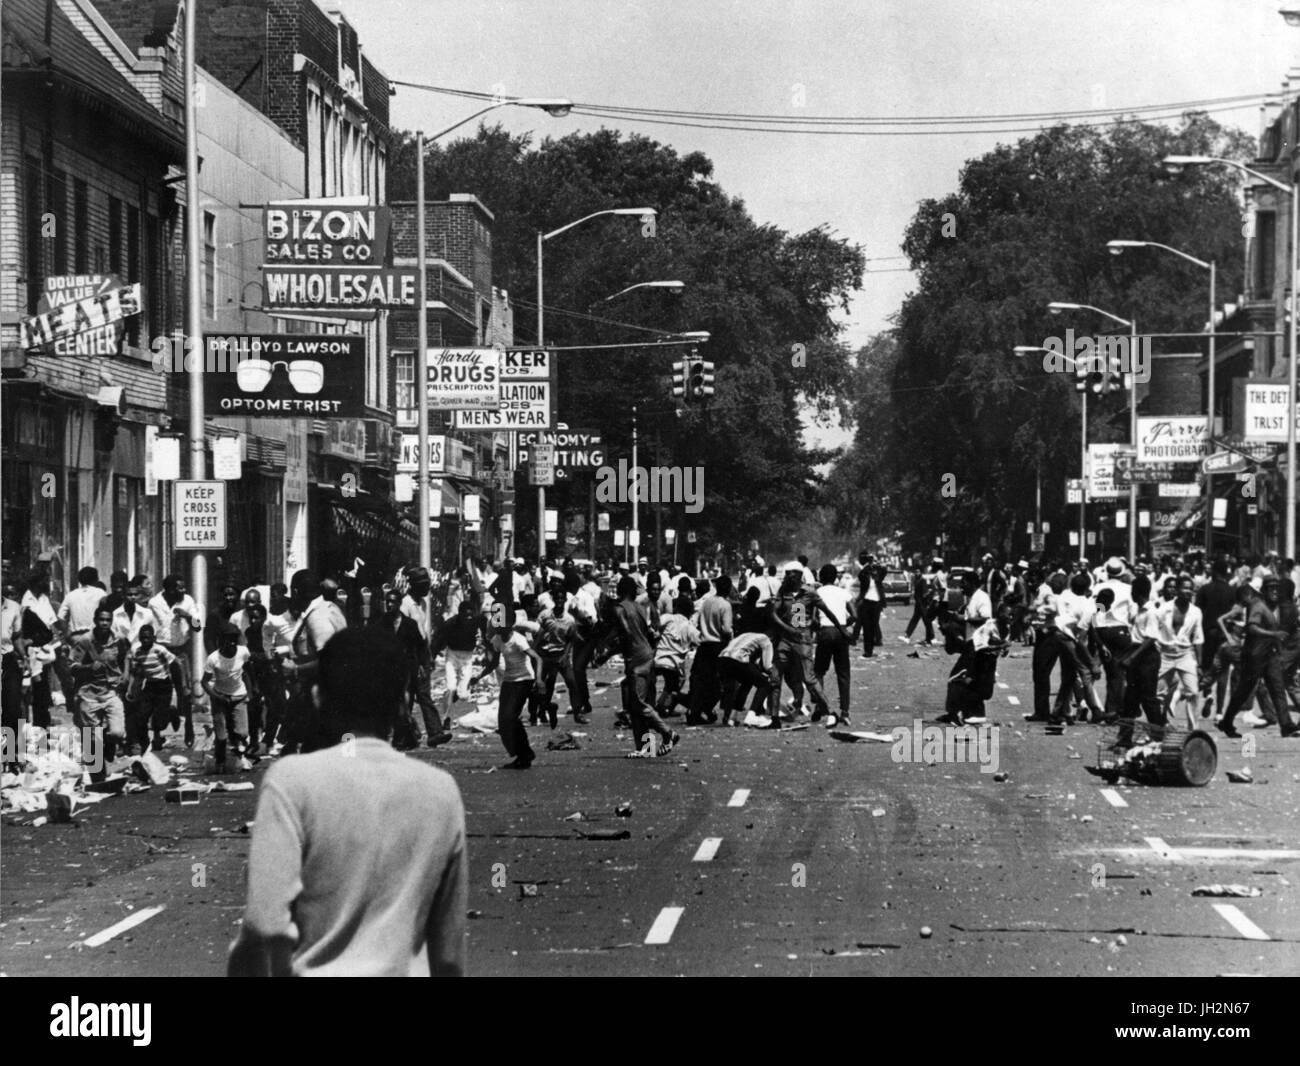 July 12, 2017 - FILE - This July 23rd marks the 50th Anniversary of The 1967 Detroit riot, also known as the 12th - Stock Image